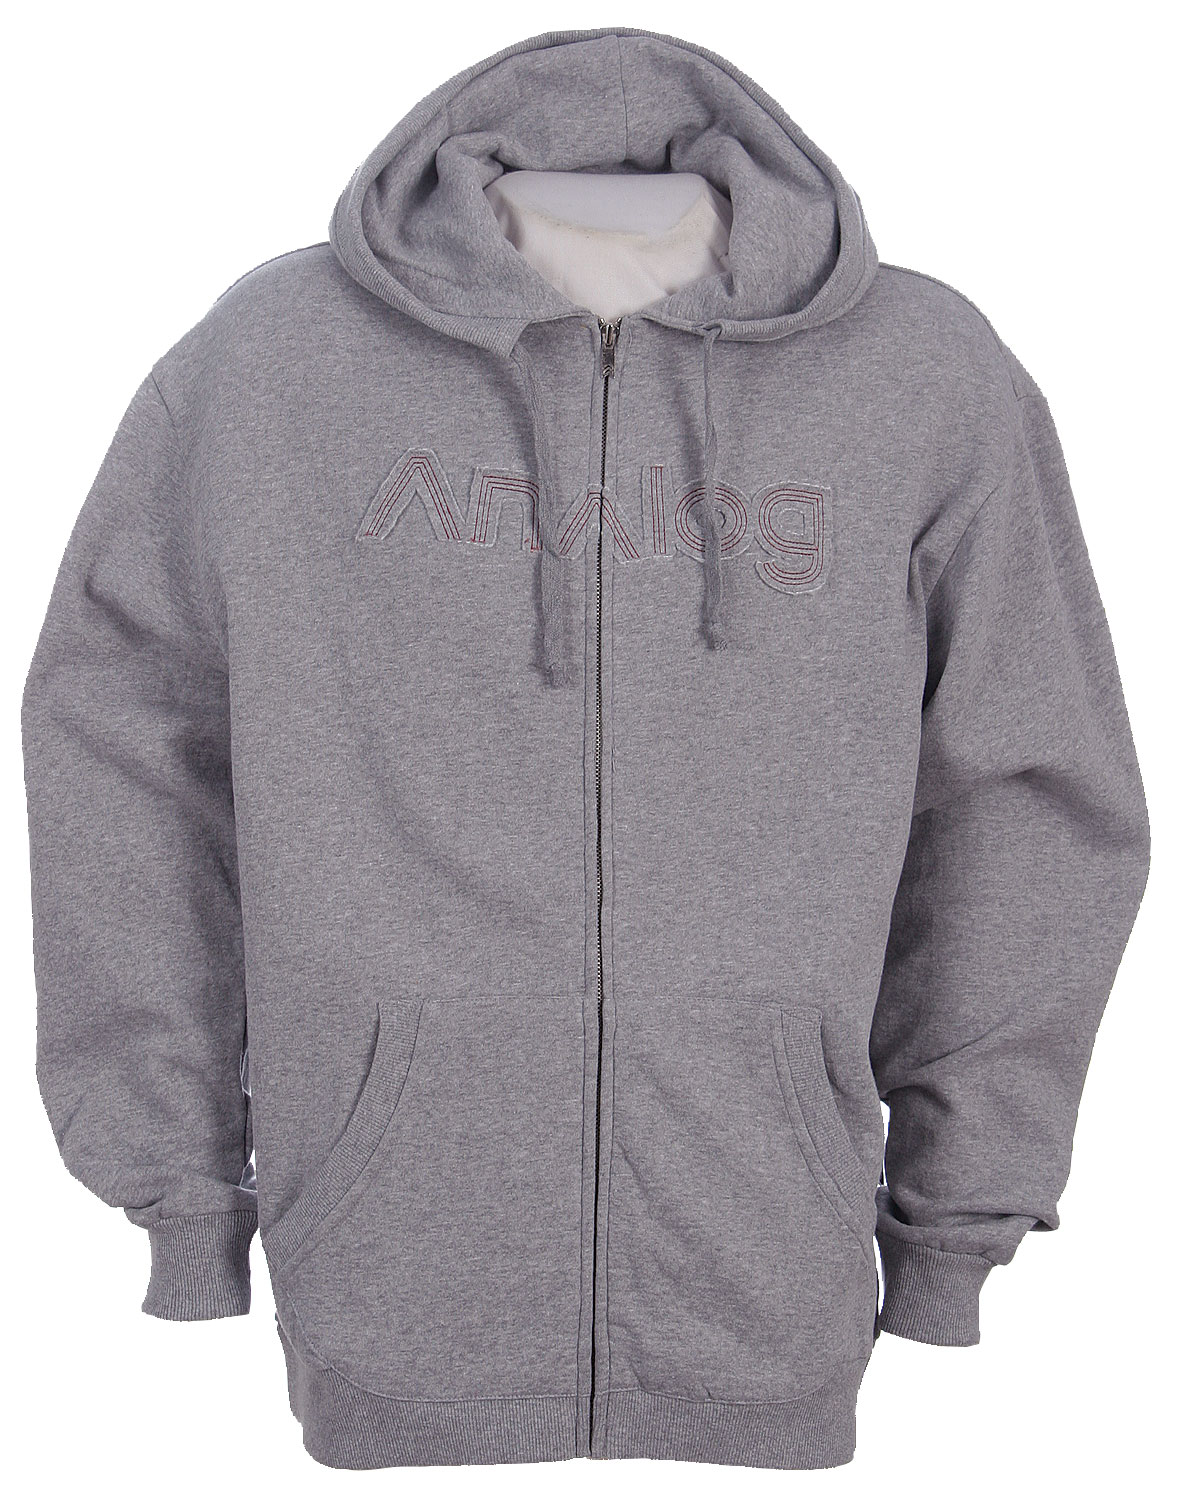 The Analog Epidemic Zip Hoodie Heather is a splendid and warm addition to your wardrobe! The fancy Analog Epidemic Zip Hoodie Heather is 80% cotton and 20% polyester for great protection from the elements. You will find the nice Analog logo on this sweatshirt's back side and the Analog company name on its front. You will also find an Analog logo on the sweatshirt's zipper itself. Analog considers style when fashioning their sportswear ensuring your satisfaction.Key Features of The Analog Epidemic Zip Hoodie: 80% Cotton / 20% Polyester Applique on the Front Chest Screenprint and Applique on Upper Back and Hood Custom Logo Zipper Pull - $26.95